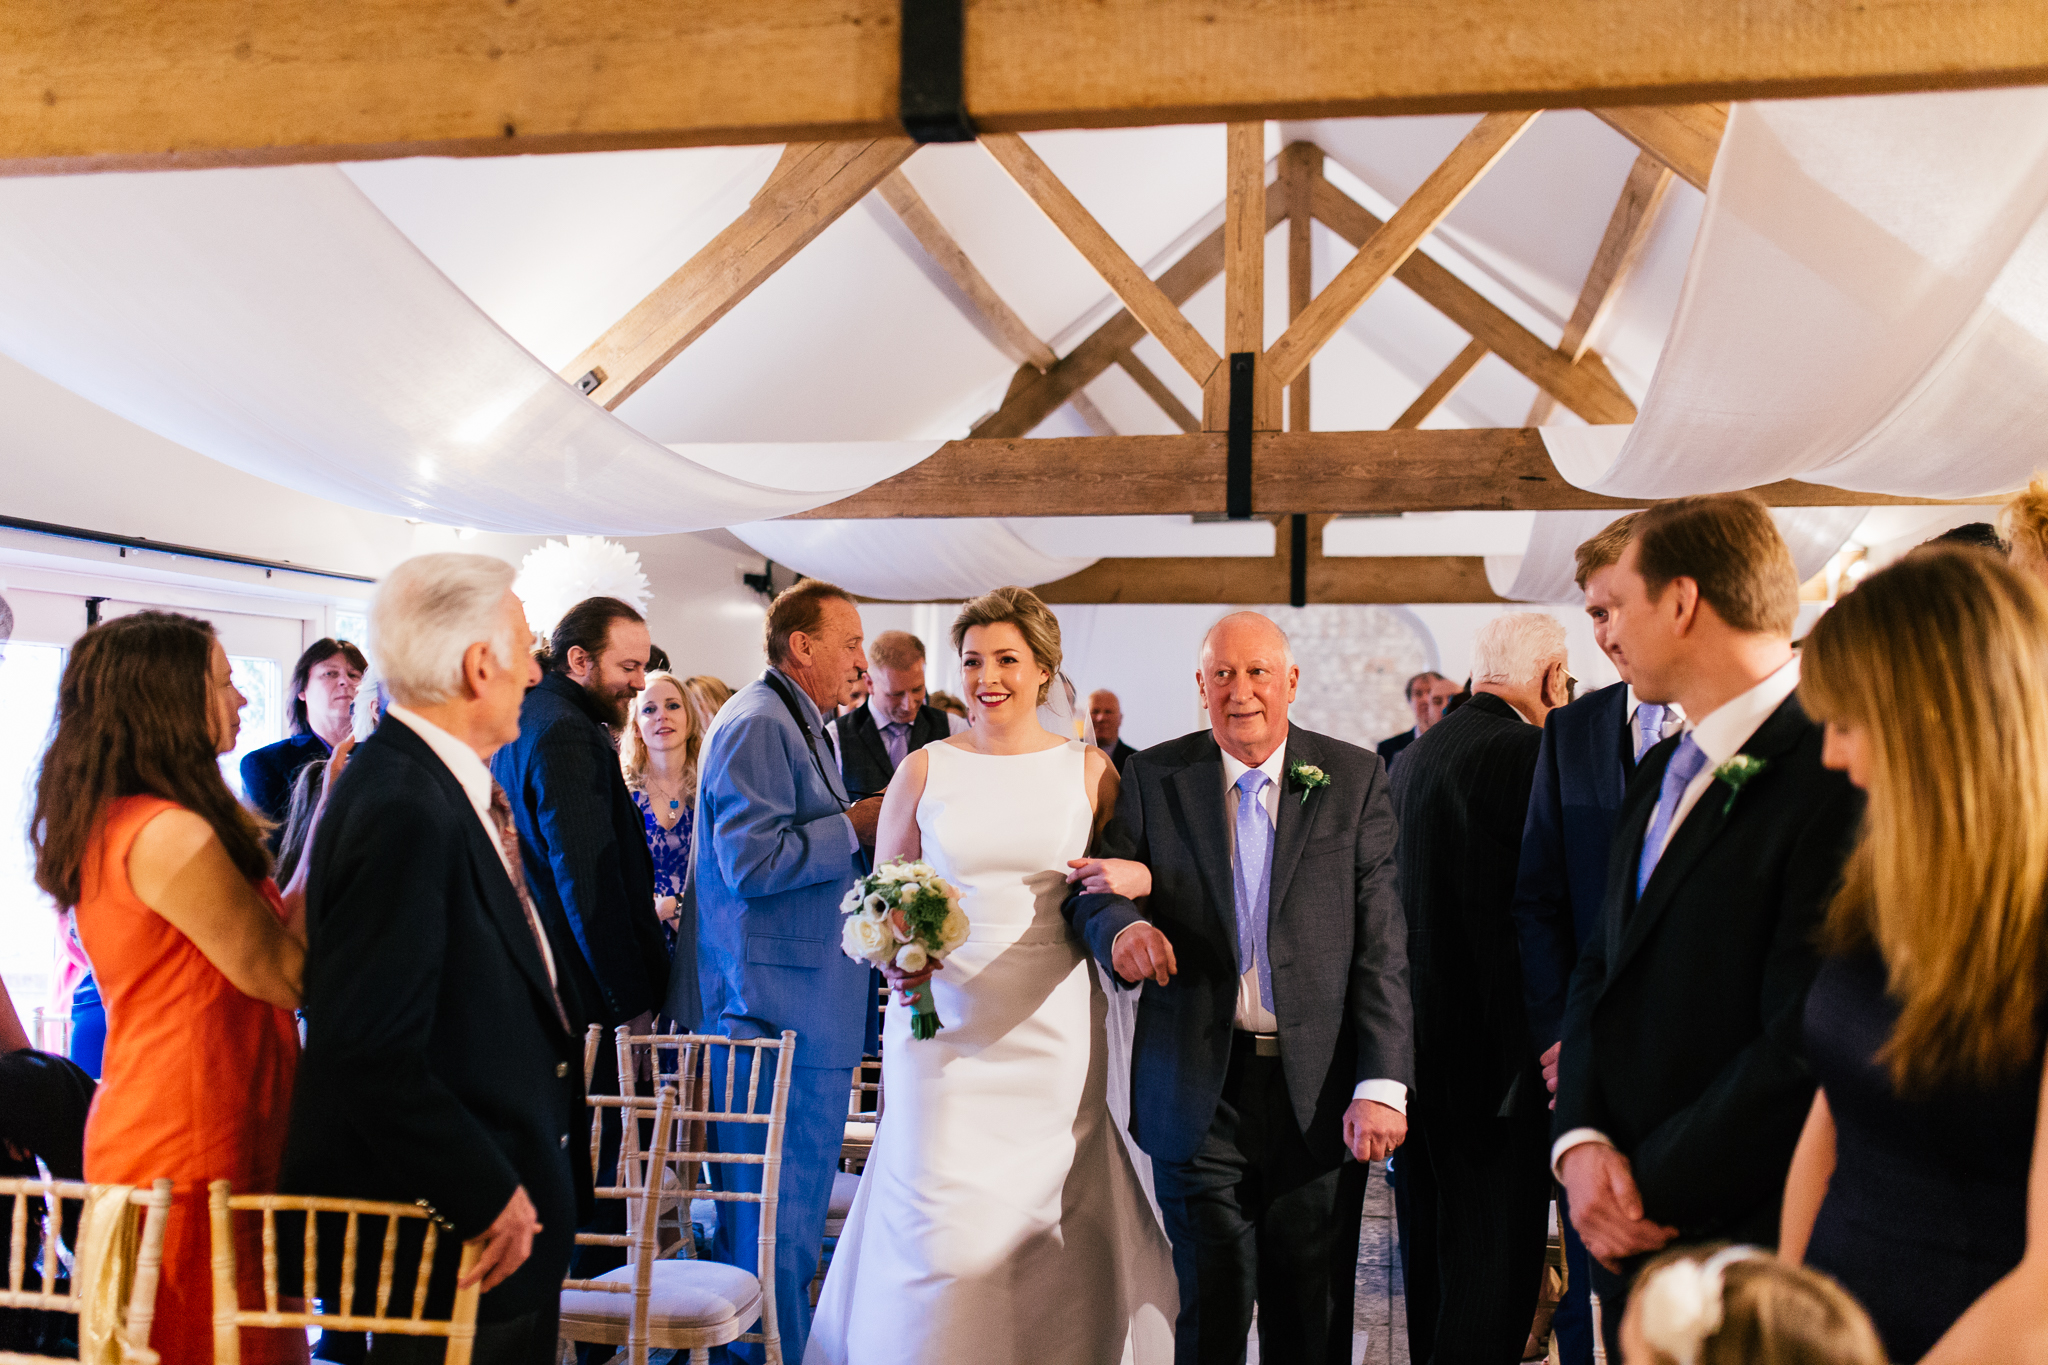 Farbridge Barn Wedding Creative Alternative Photo Chichester Joanna Nicole Photography (27 of 133).jpg